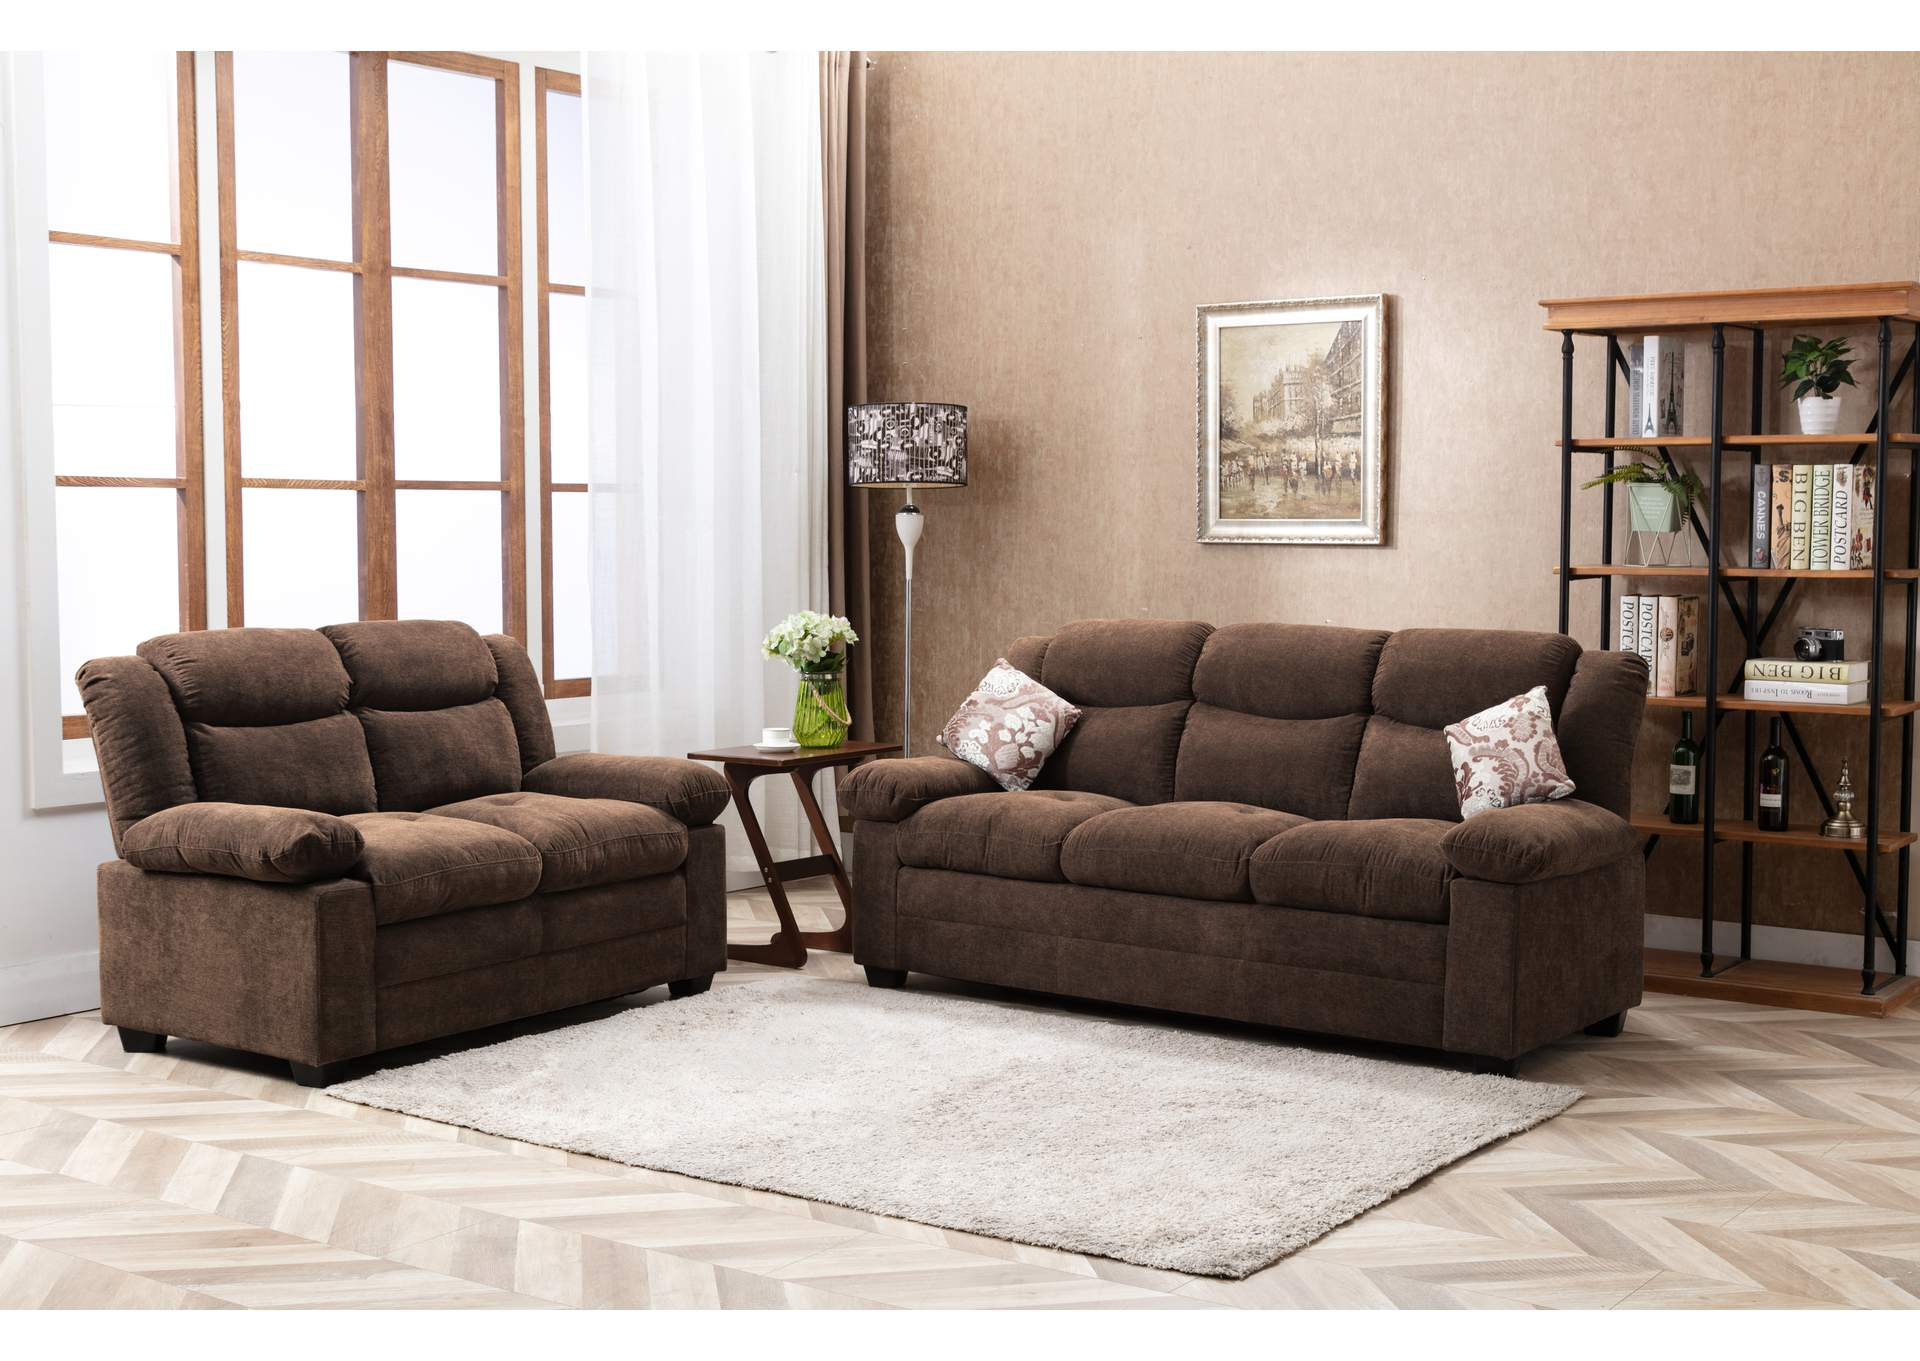 Brown Loveseat,Global Trading